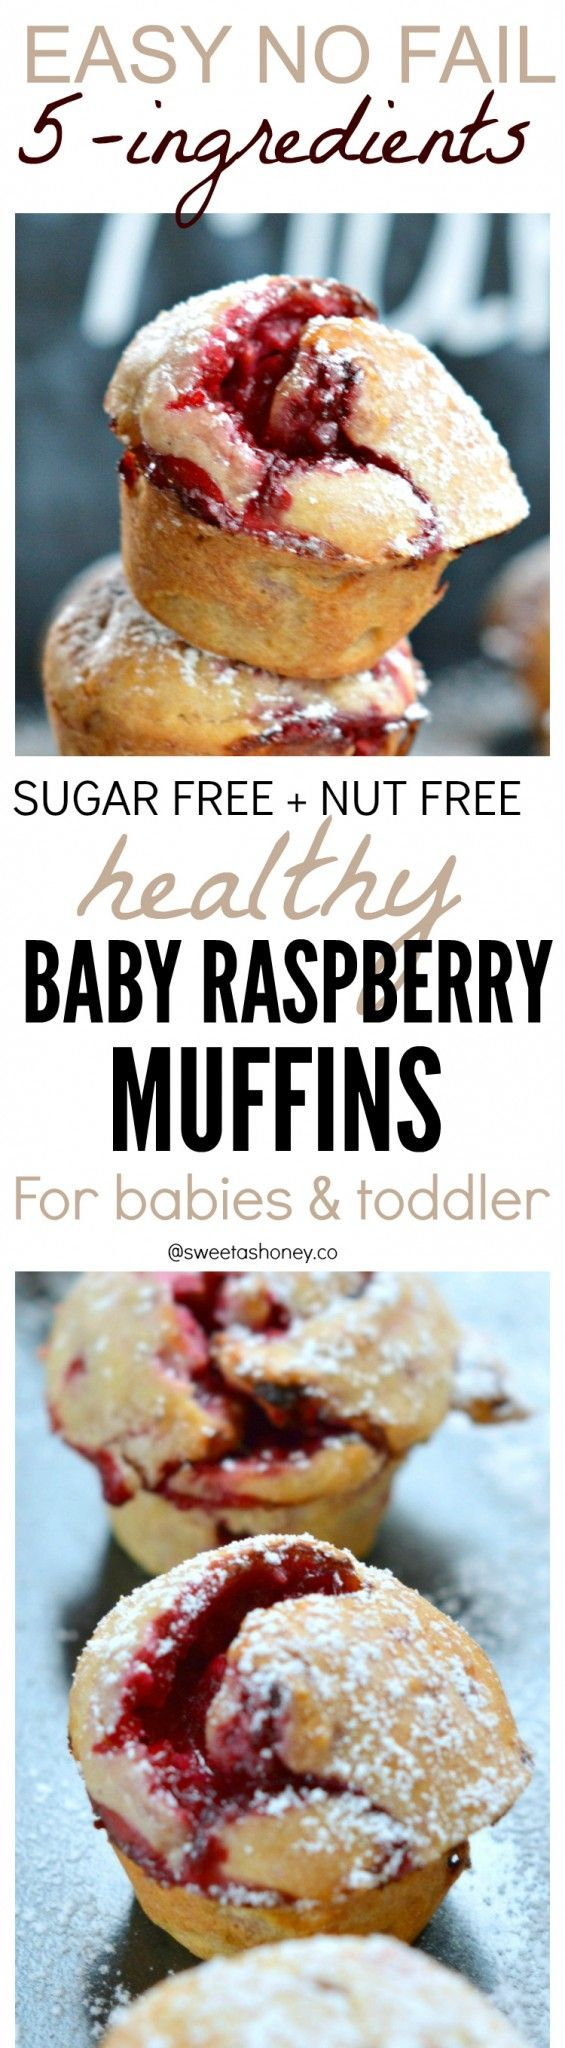 46 best blw snack ideas images on pinterest baby foods baby sugar free baby raspberry muffins only 5 ingredients no processed food ideal for forumfinder Gallery